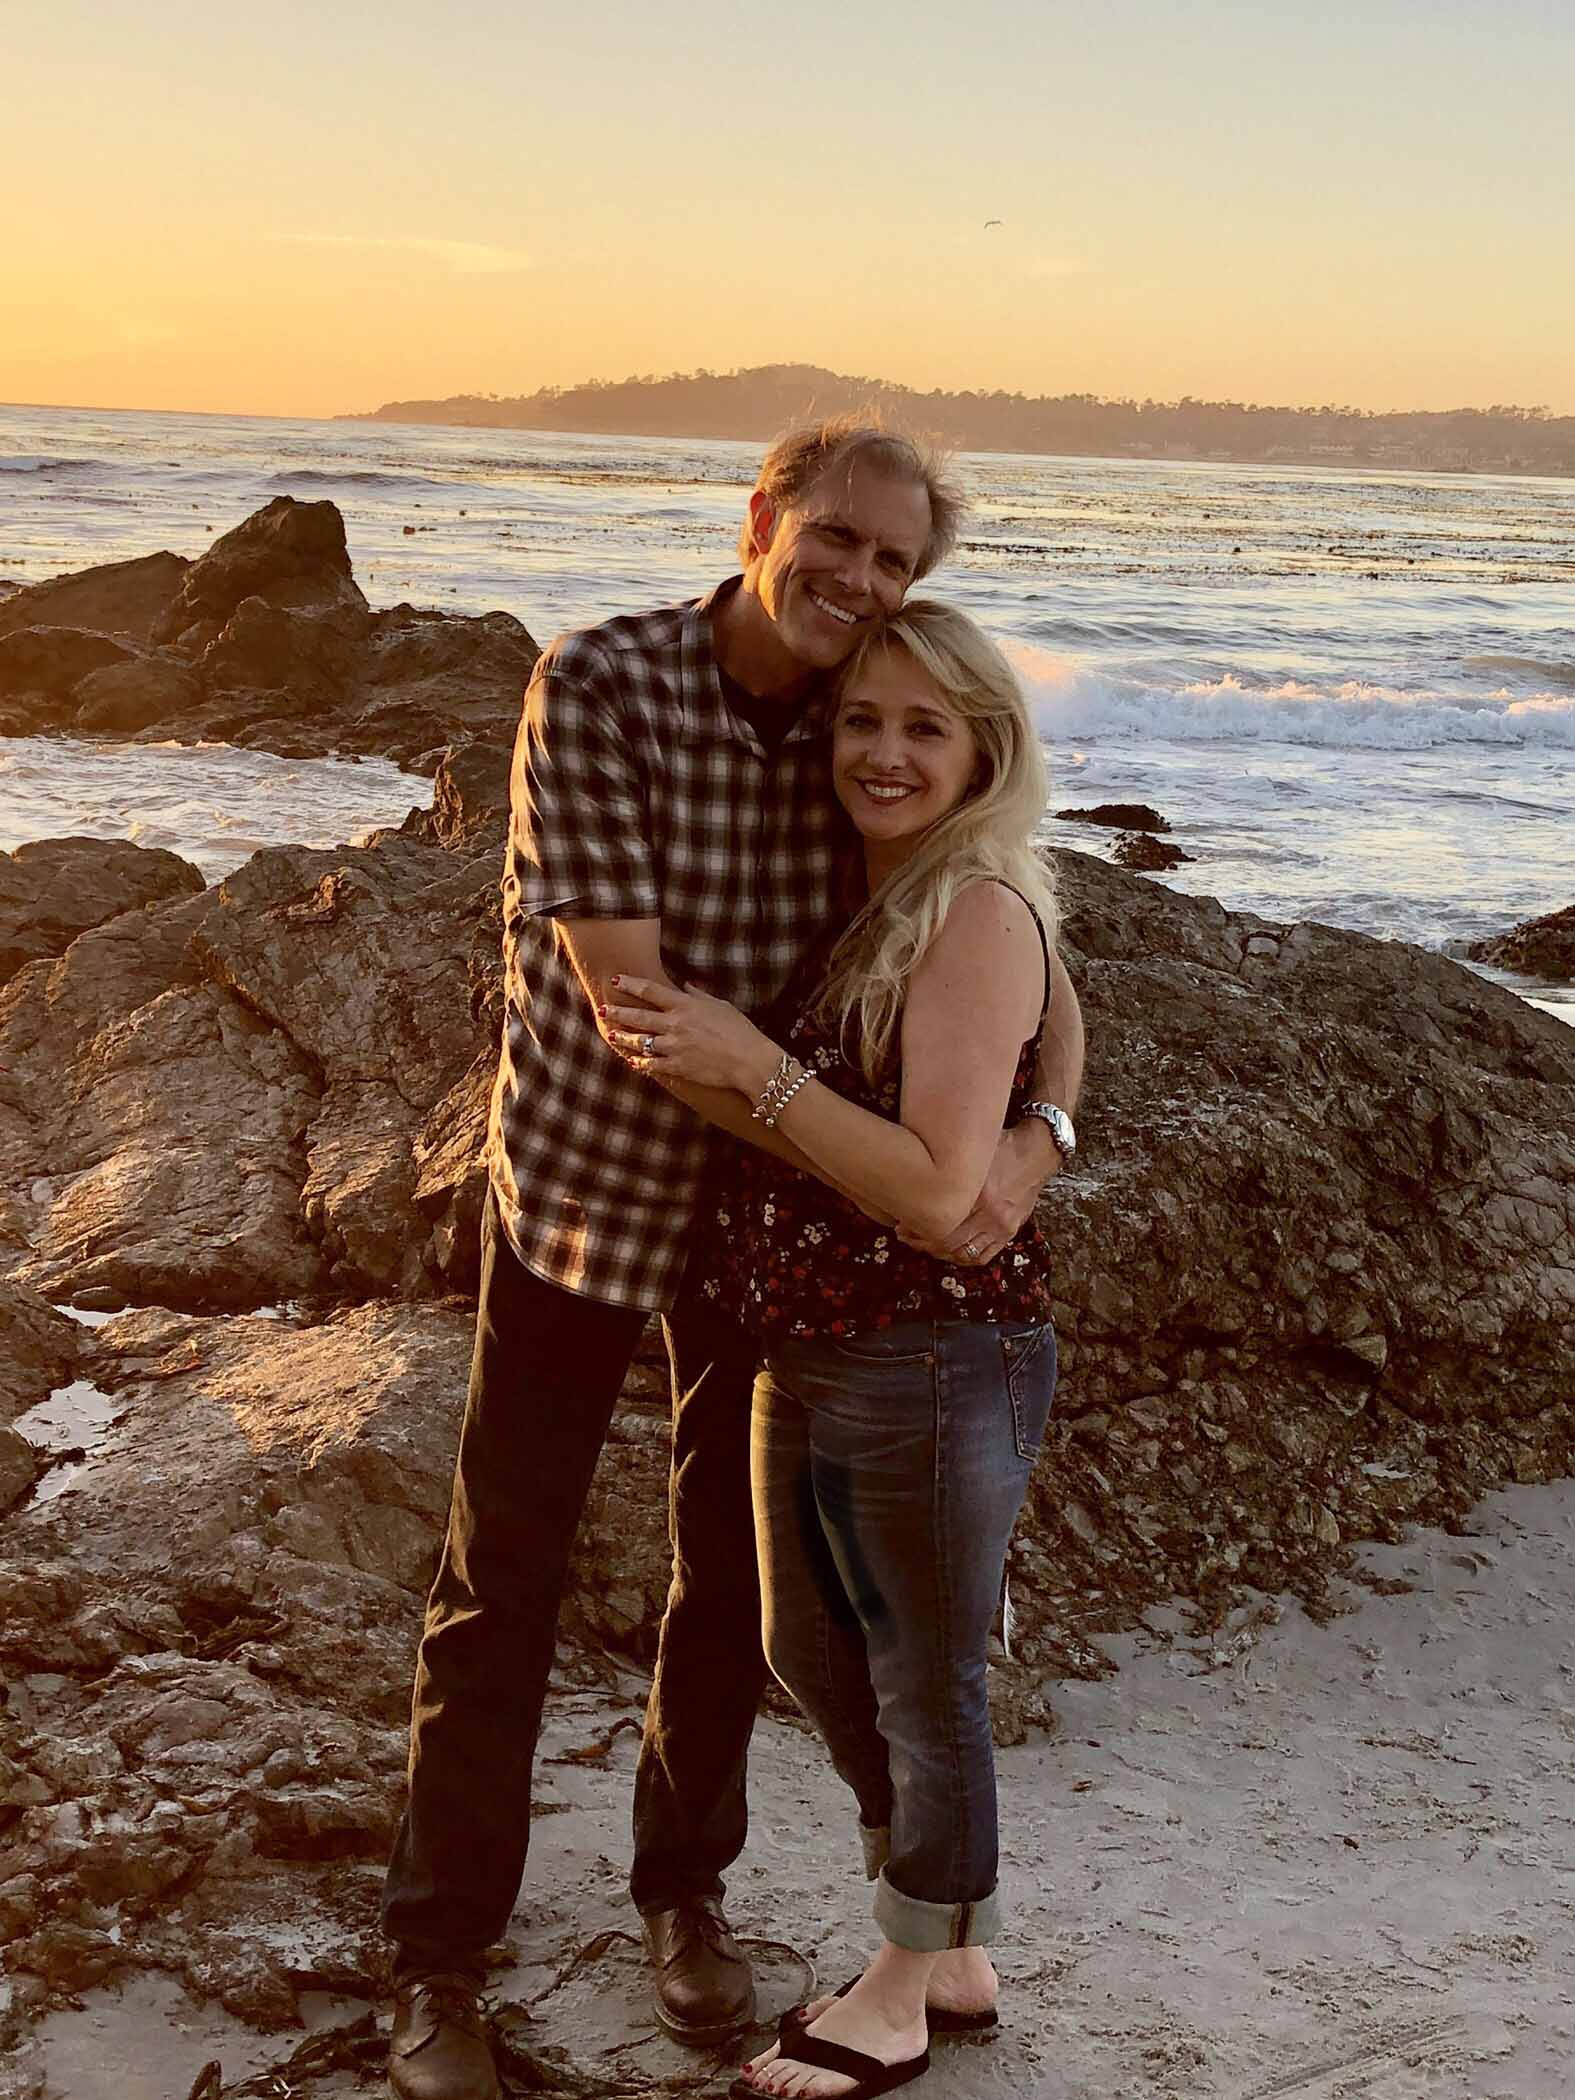 Craig and I in Carmel in September 2018. Our last time there together.